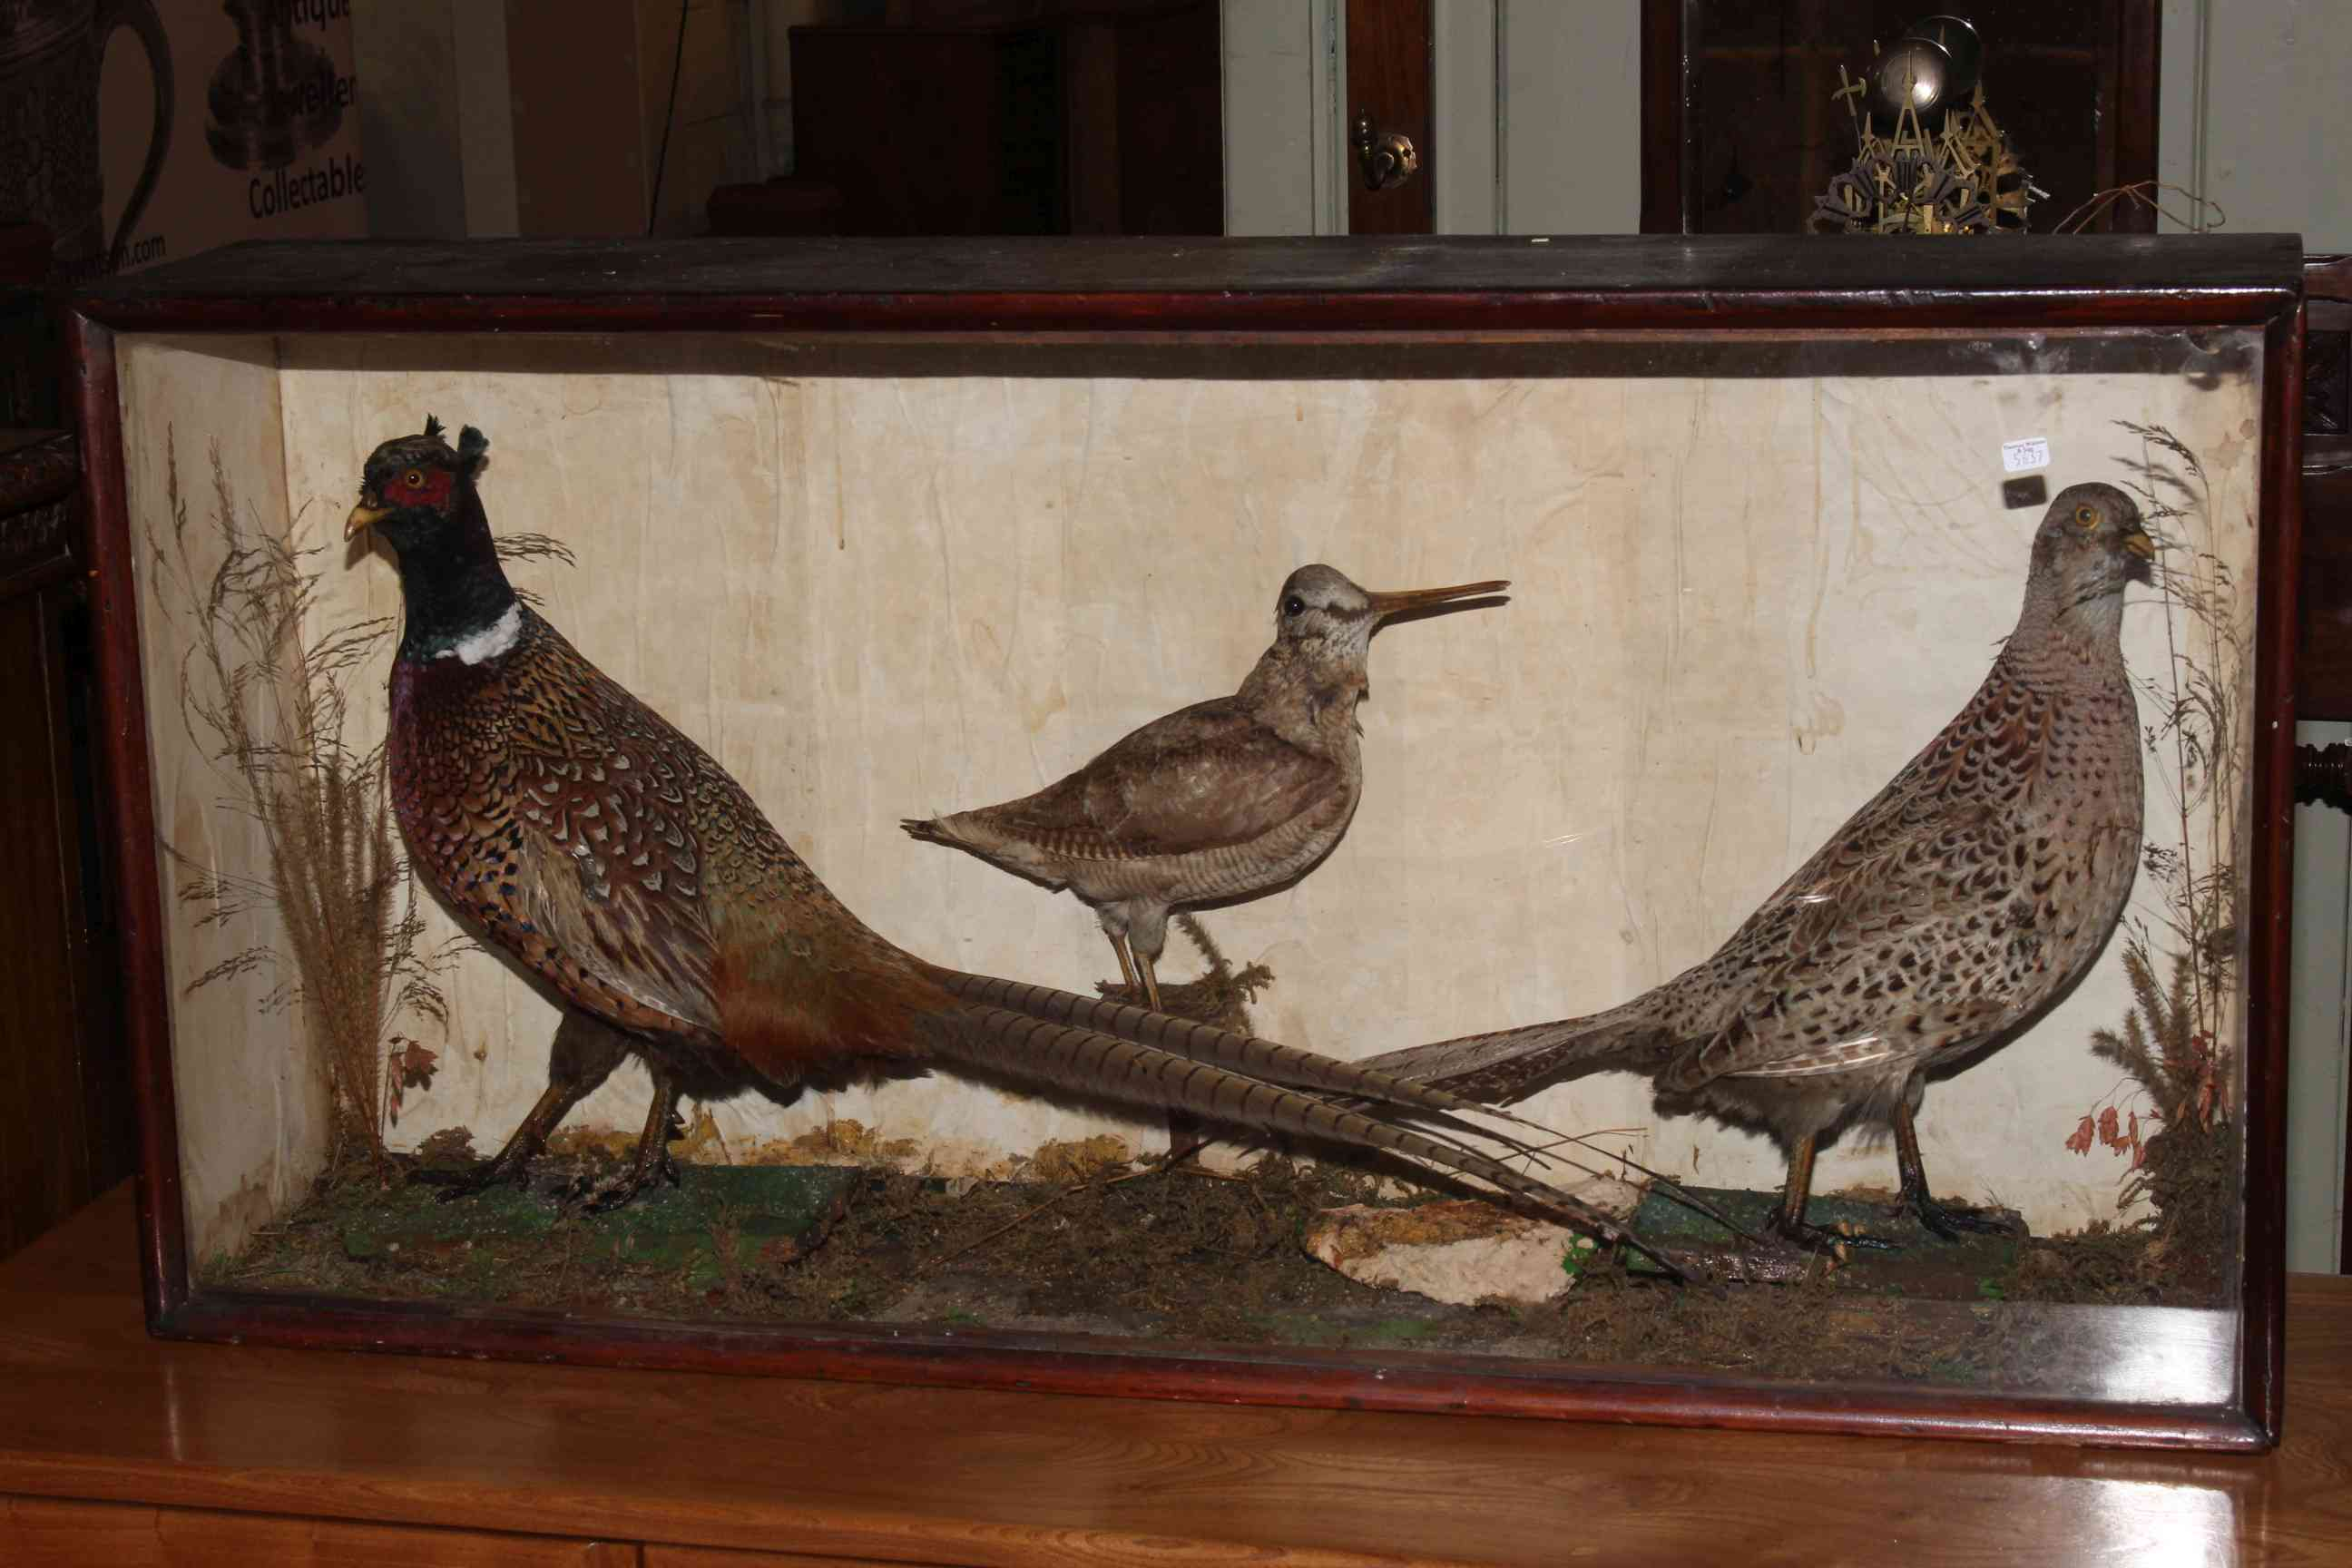 Lot 49 - Cased taxidermy of two pheasants and a snipe